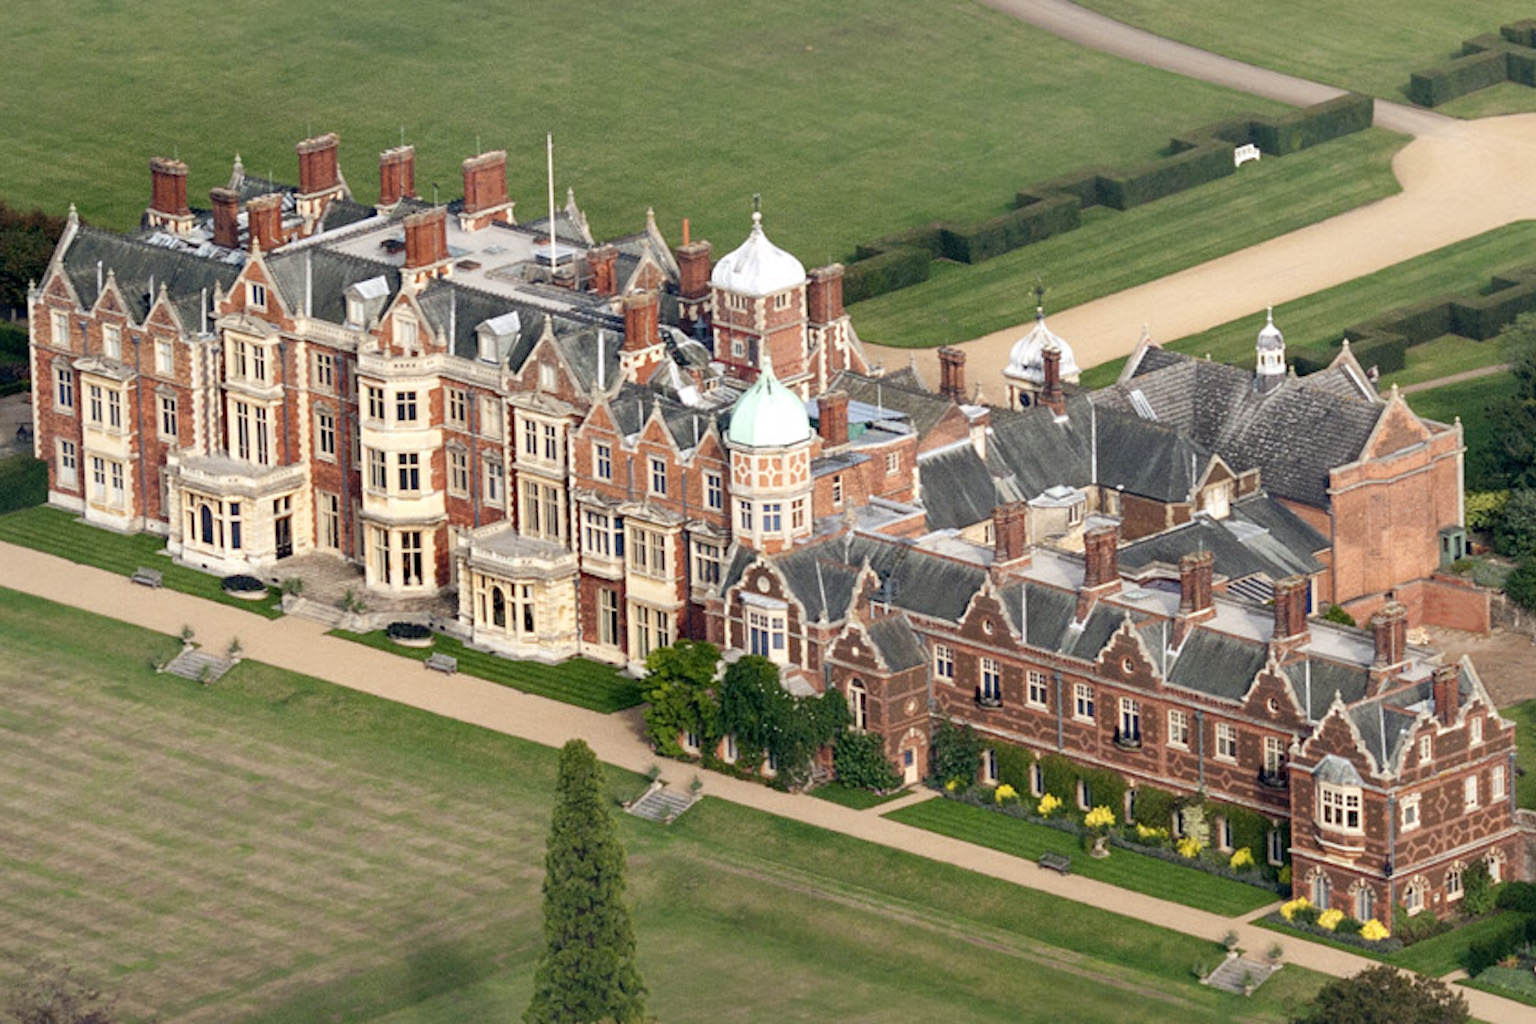 Sandringham House from the Air with adventure play by CAP.Co